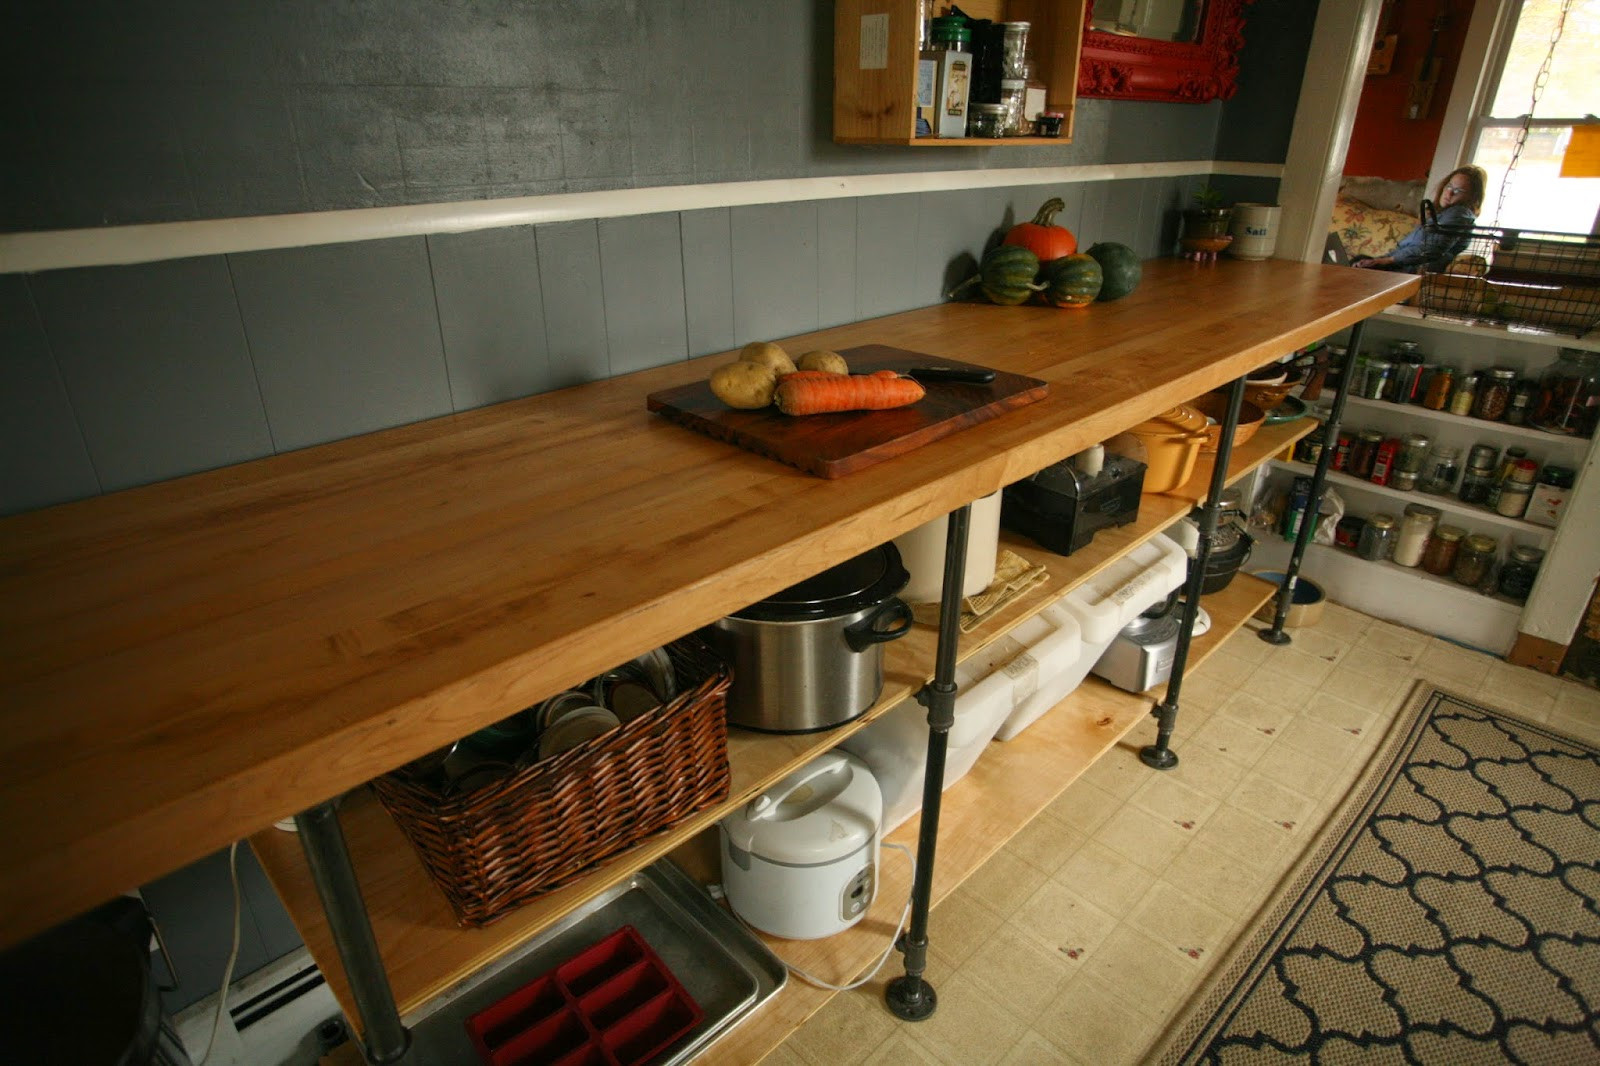 Best ideas about DIY Kitchen Counters . Save or Pin Whittled Down Life DIY Black Pipe Kitchen Counter Now.